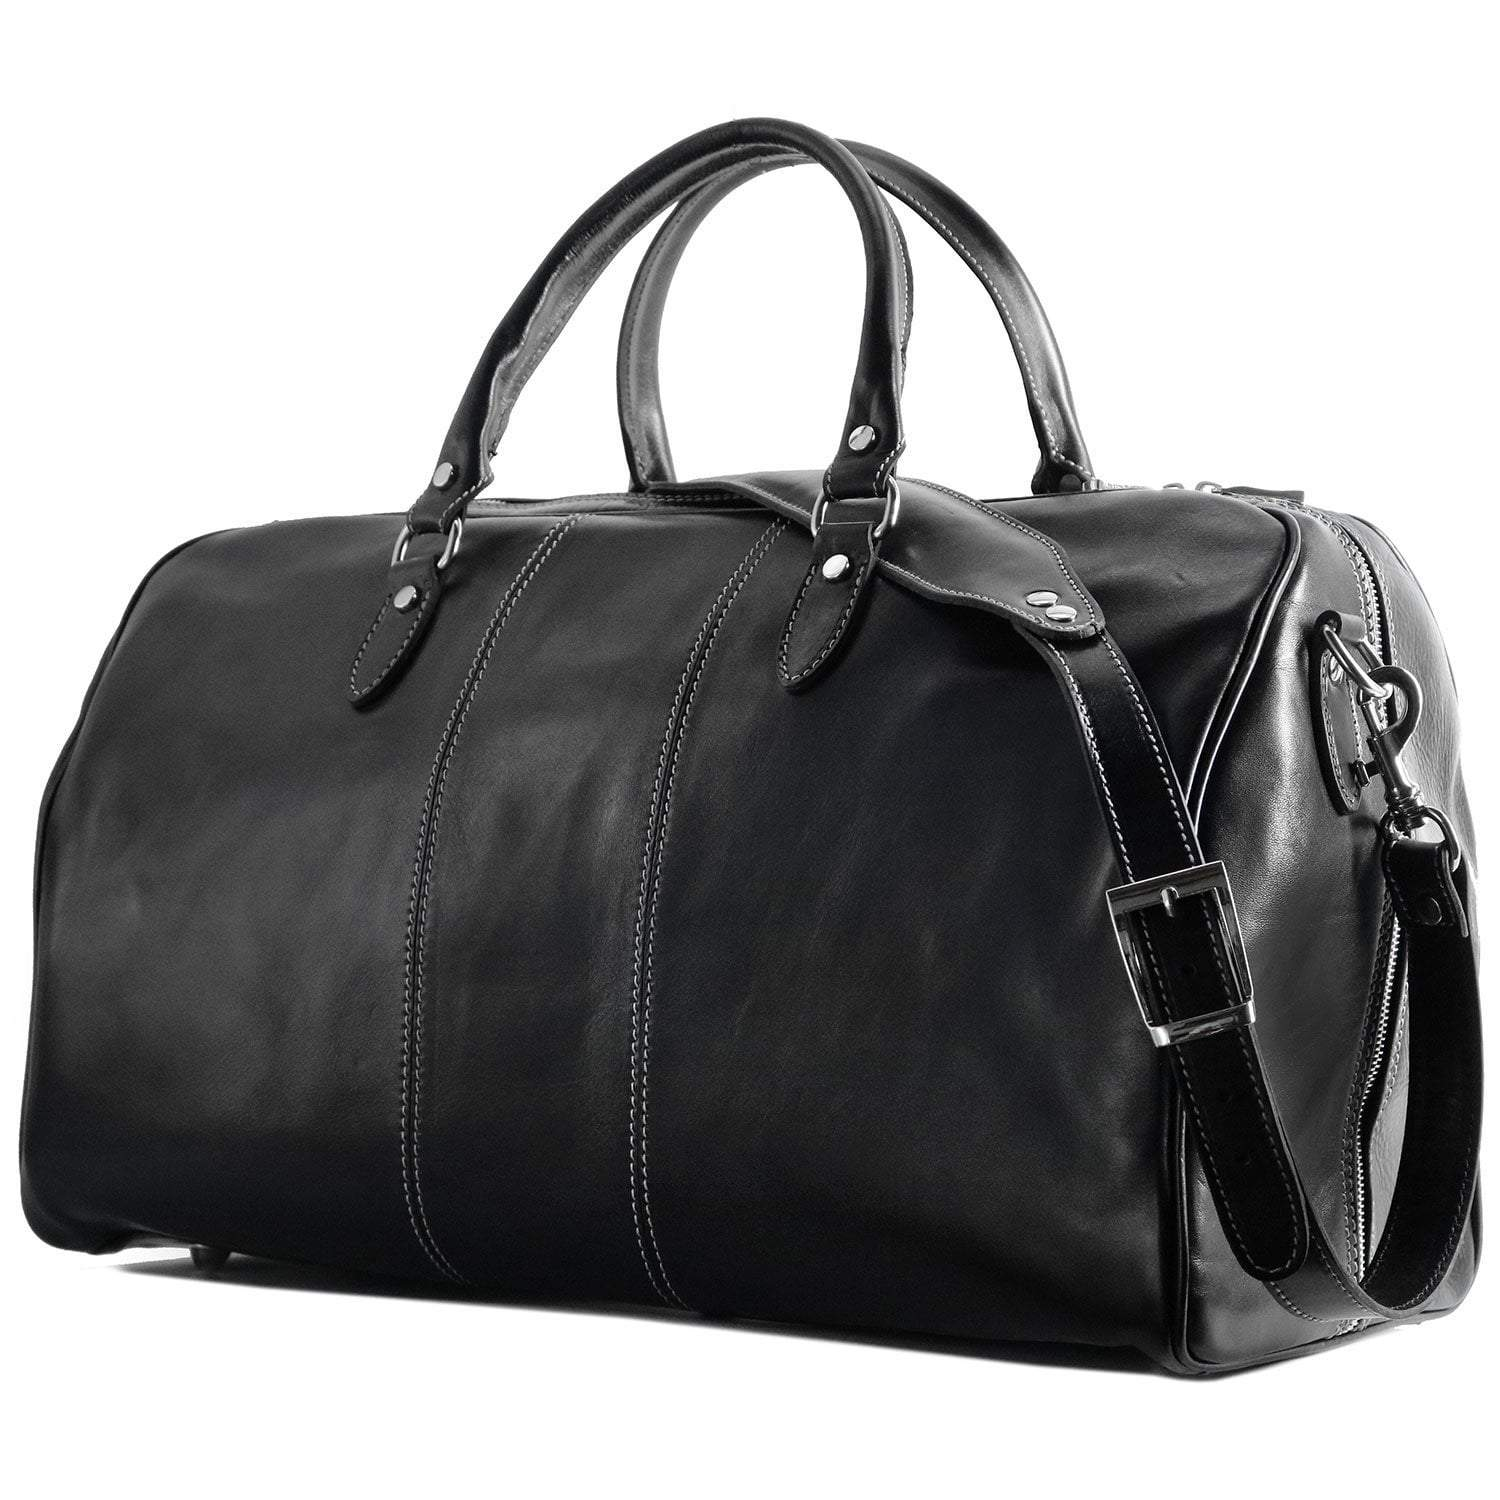 Floto Venezia Leather Travel Duffle Bag 2.0 - Black with Strap, side view